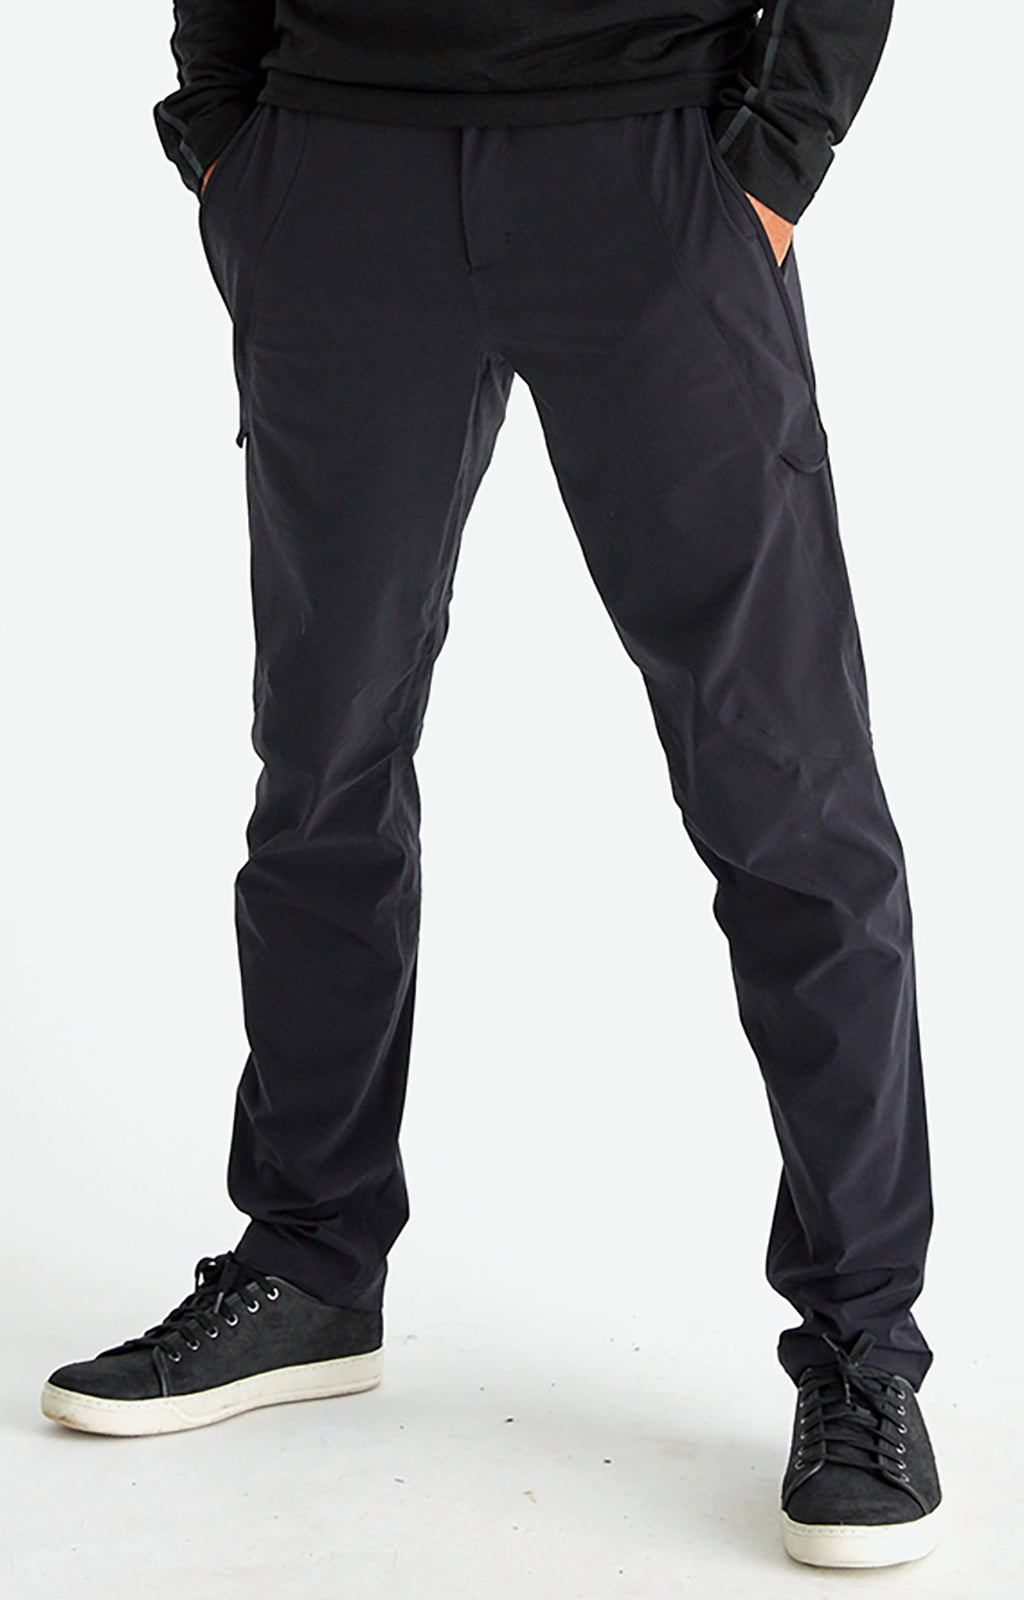 Ability - Modern Traveler Pants in Black